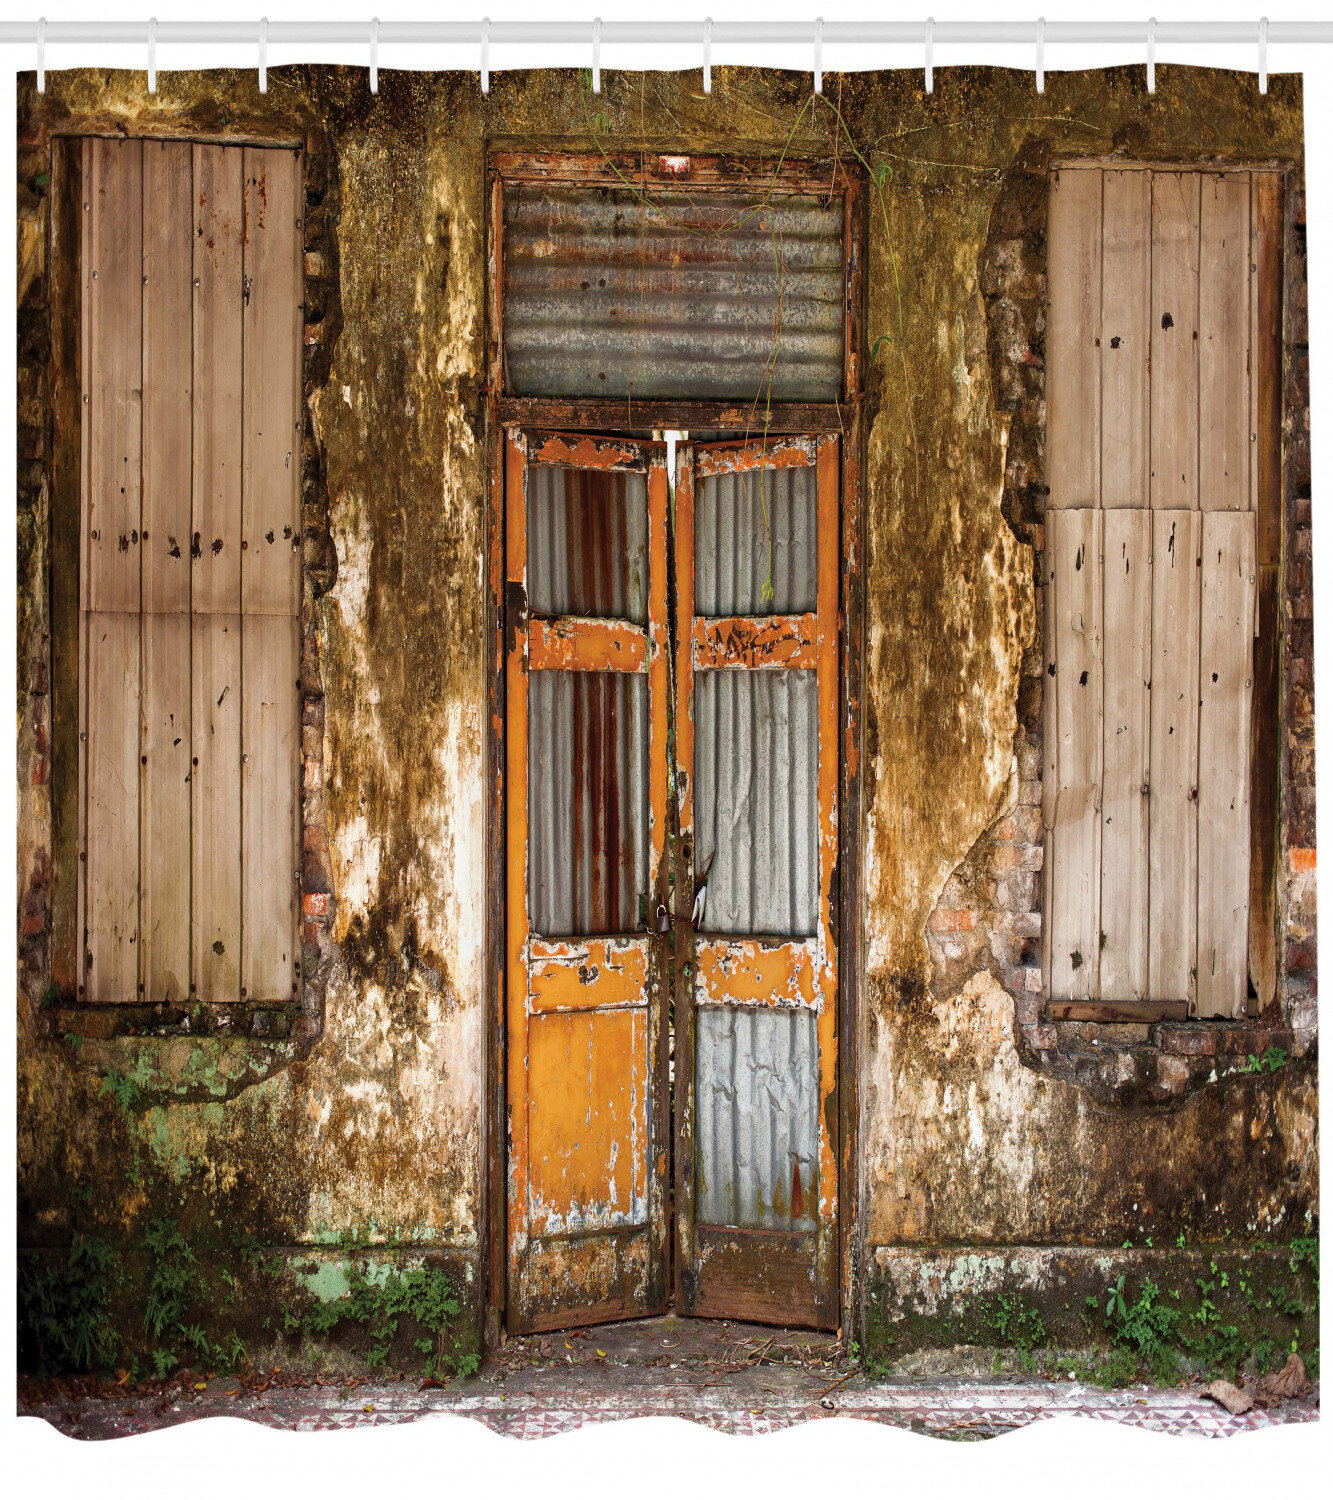 Rustic Home Damaged Shabby House With Boarded Up Rusty Doors And Mold Windows Home Decor Shower Curtain Set